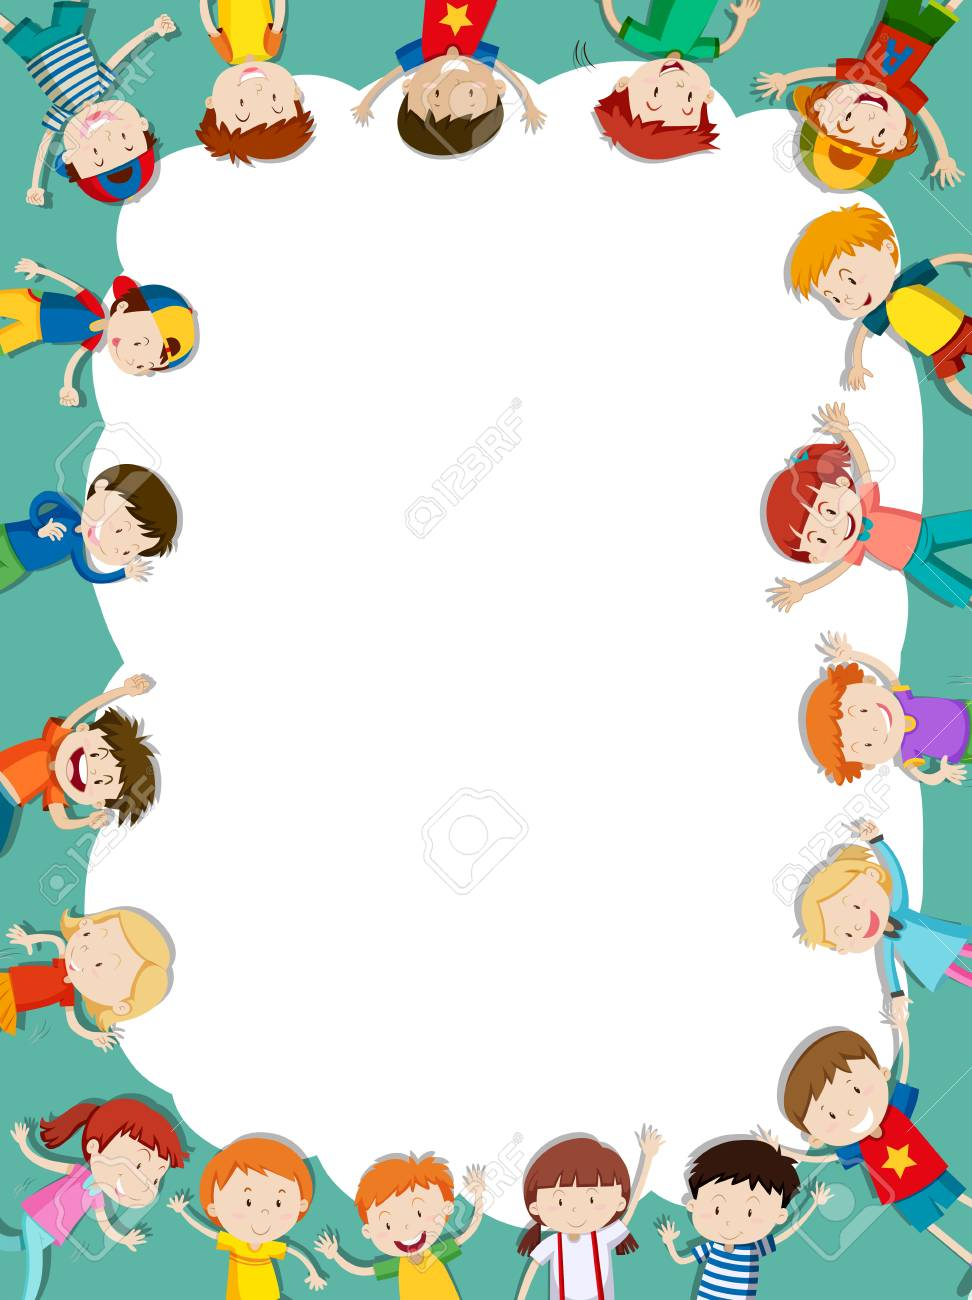 Border template with happy children in background illustration